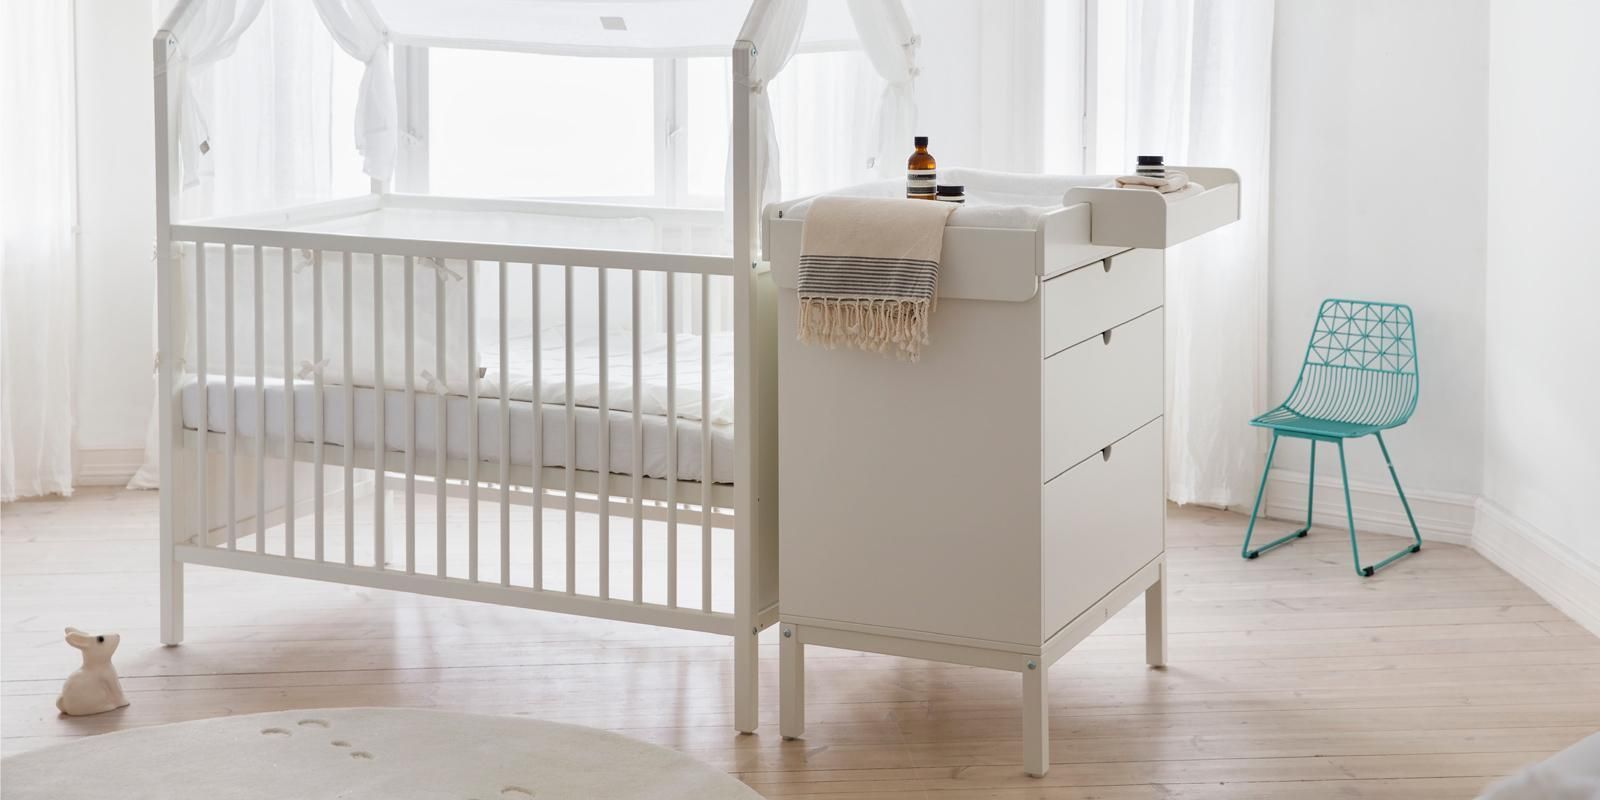 Changer White Stokke Home Changer. Attaches safely to the Stokke® Home™ dresser, bed and cradle stand. Turns into a play table with the cradle stand when the diaper days are over!Stokke Home Changer. Attaches safely to the Stokke® Home™ dresser, bed and cradle stand. Turns into a play table with the cradle stand when the diaper days are over!